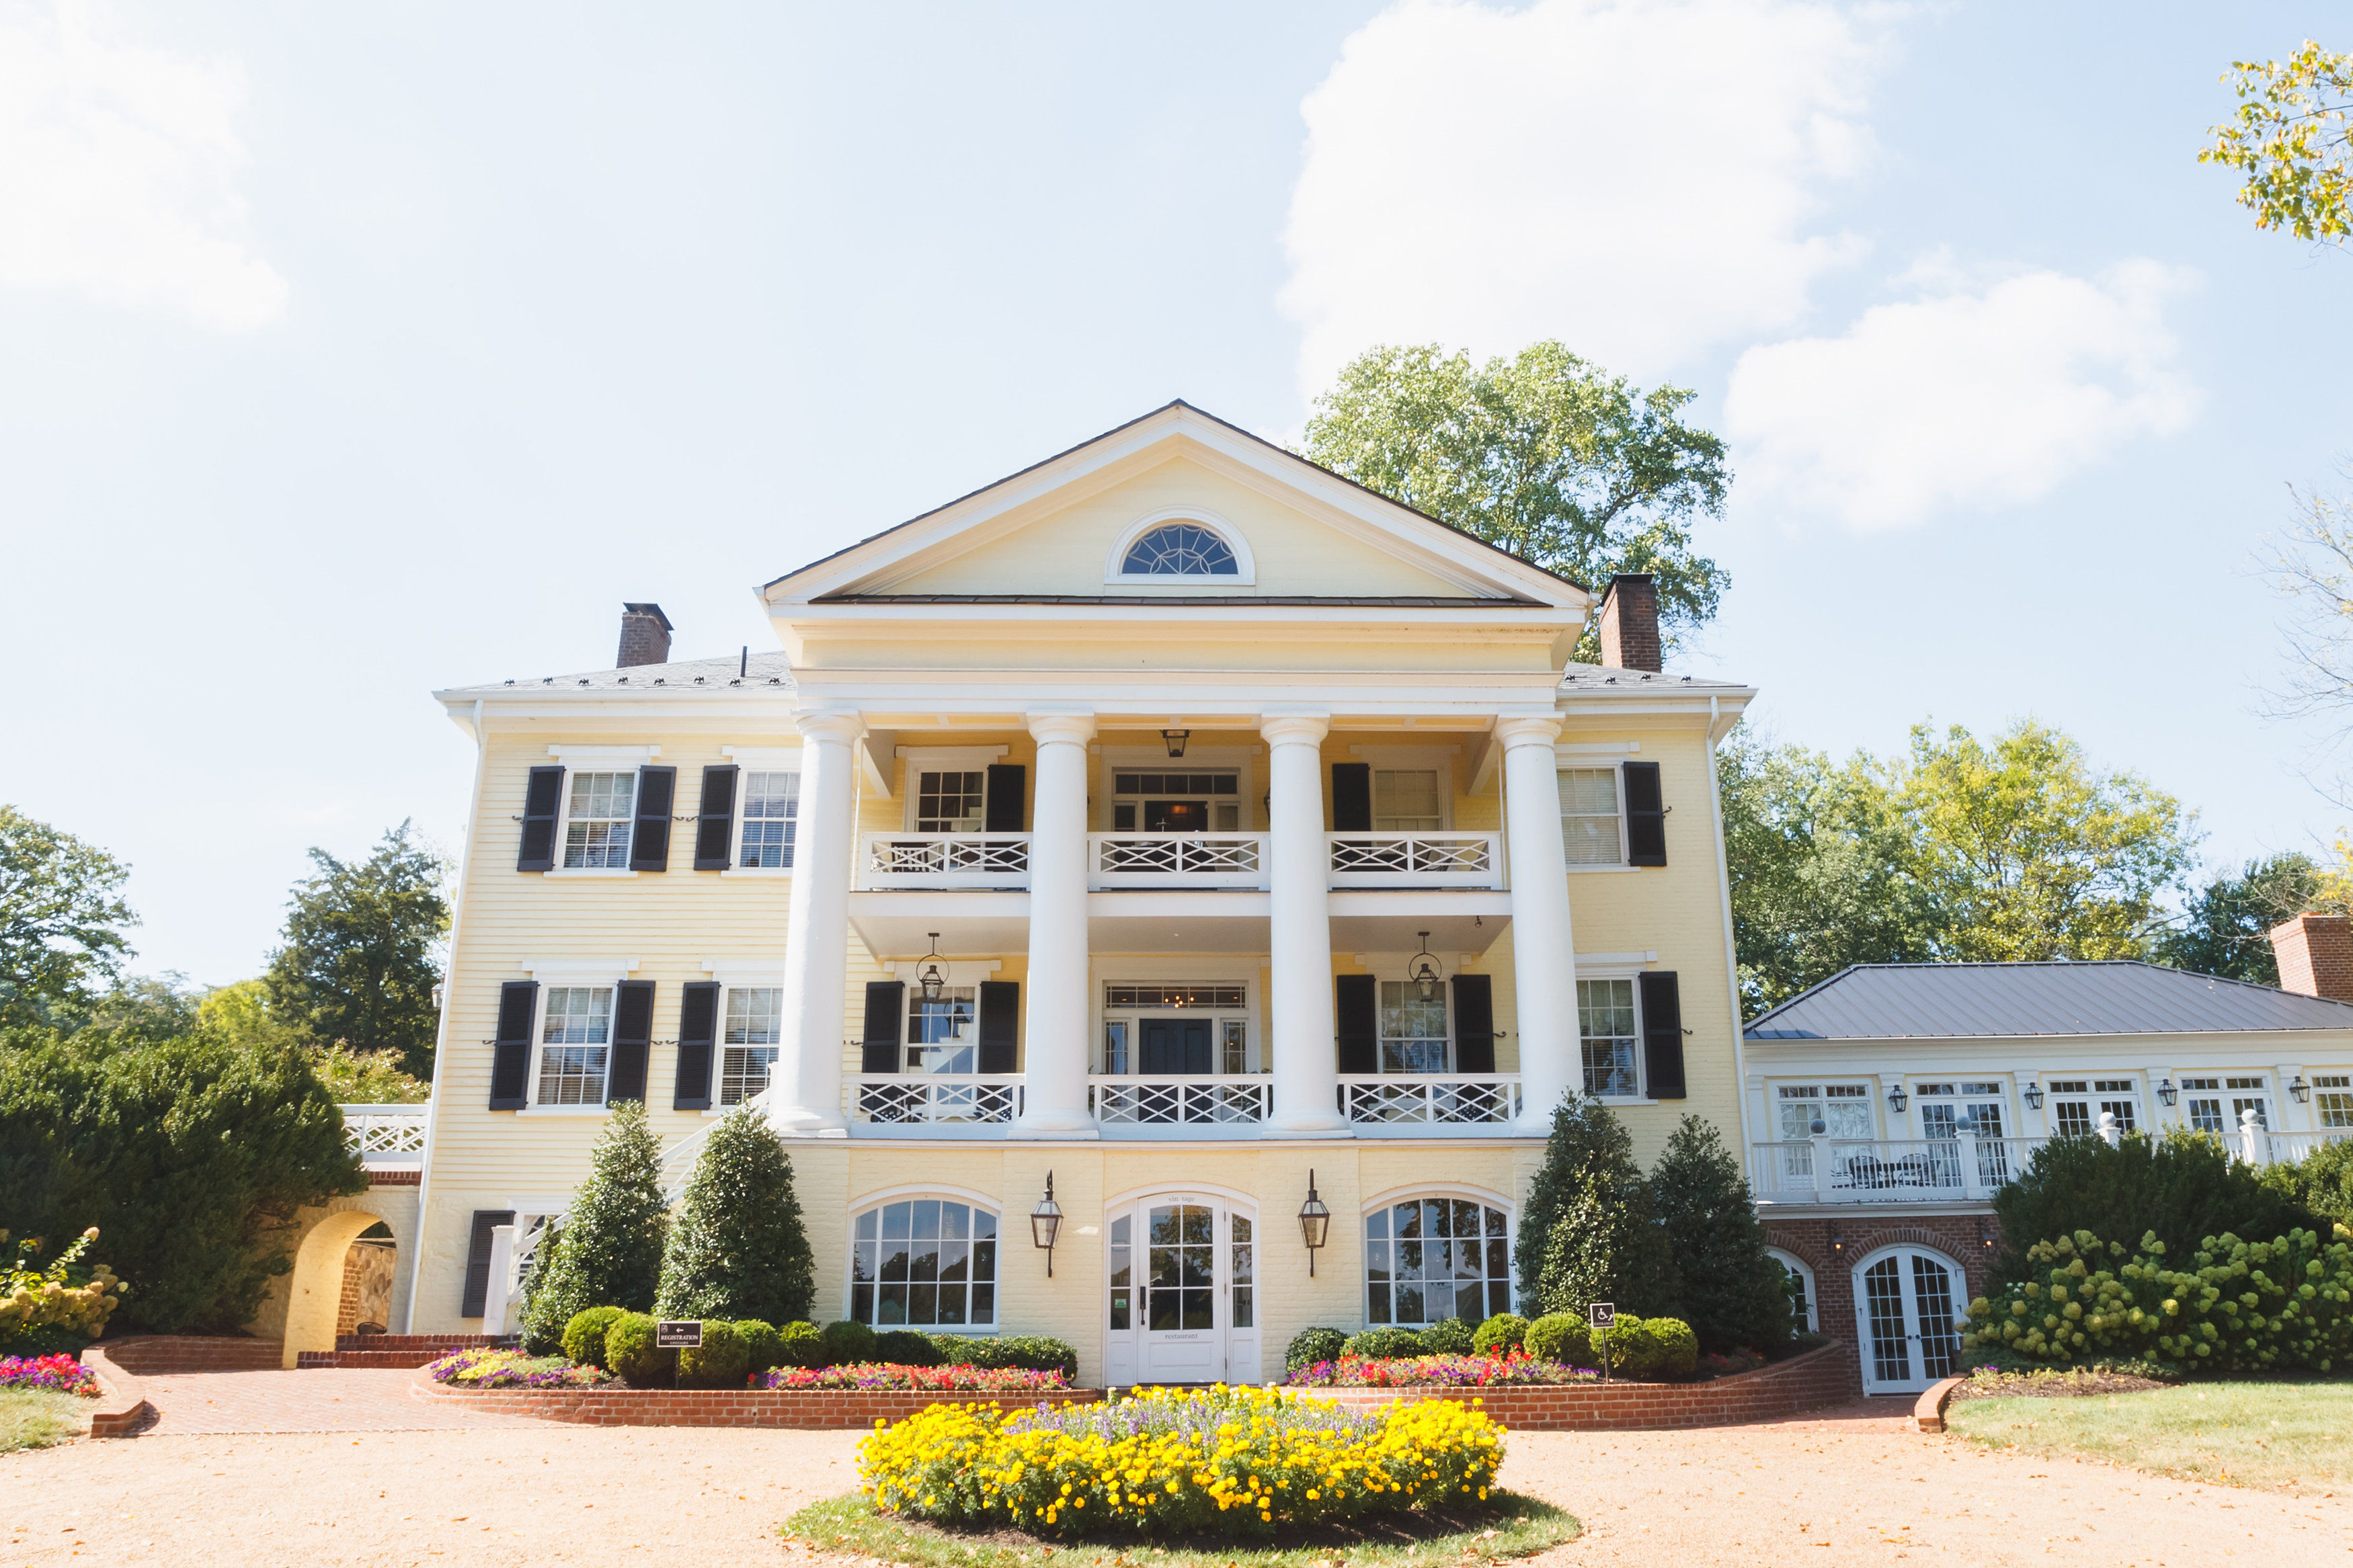 Escape, Unwind, and Indulge at The Inn at Willow Grove